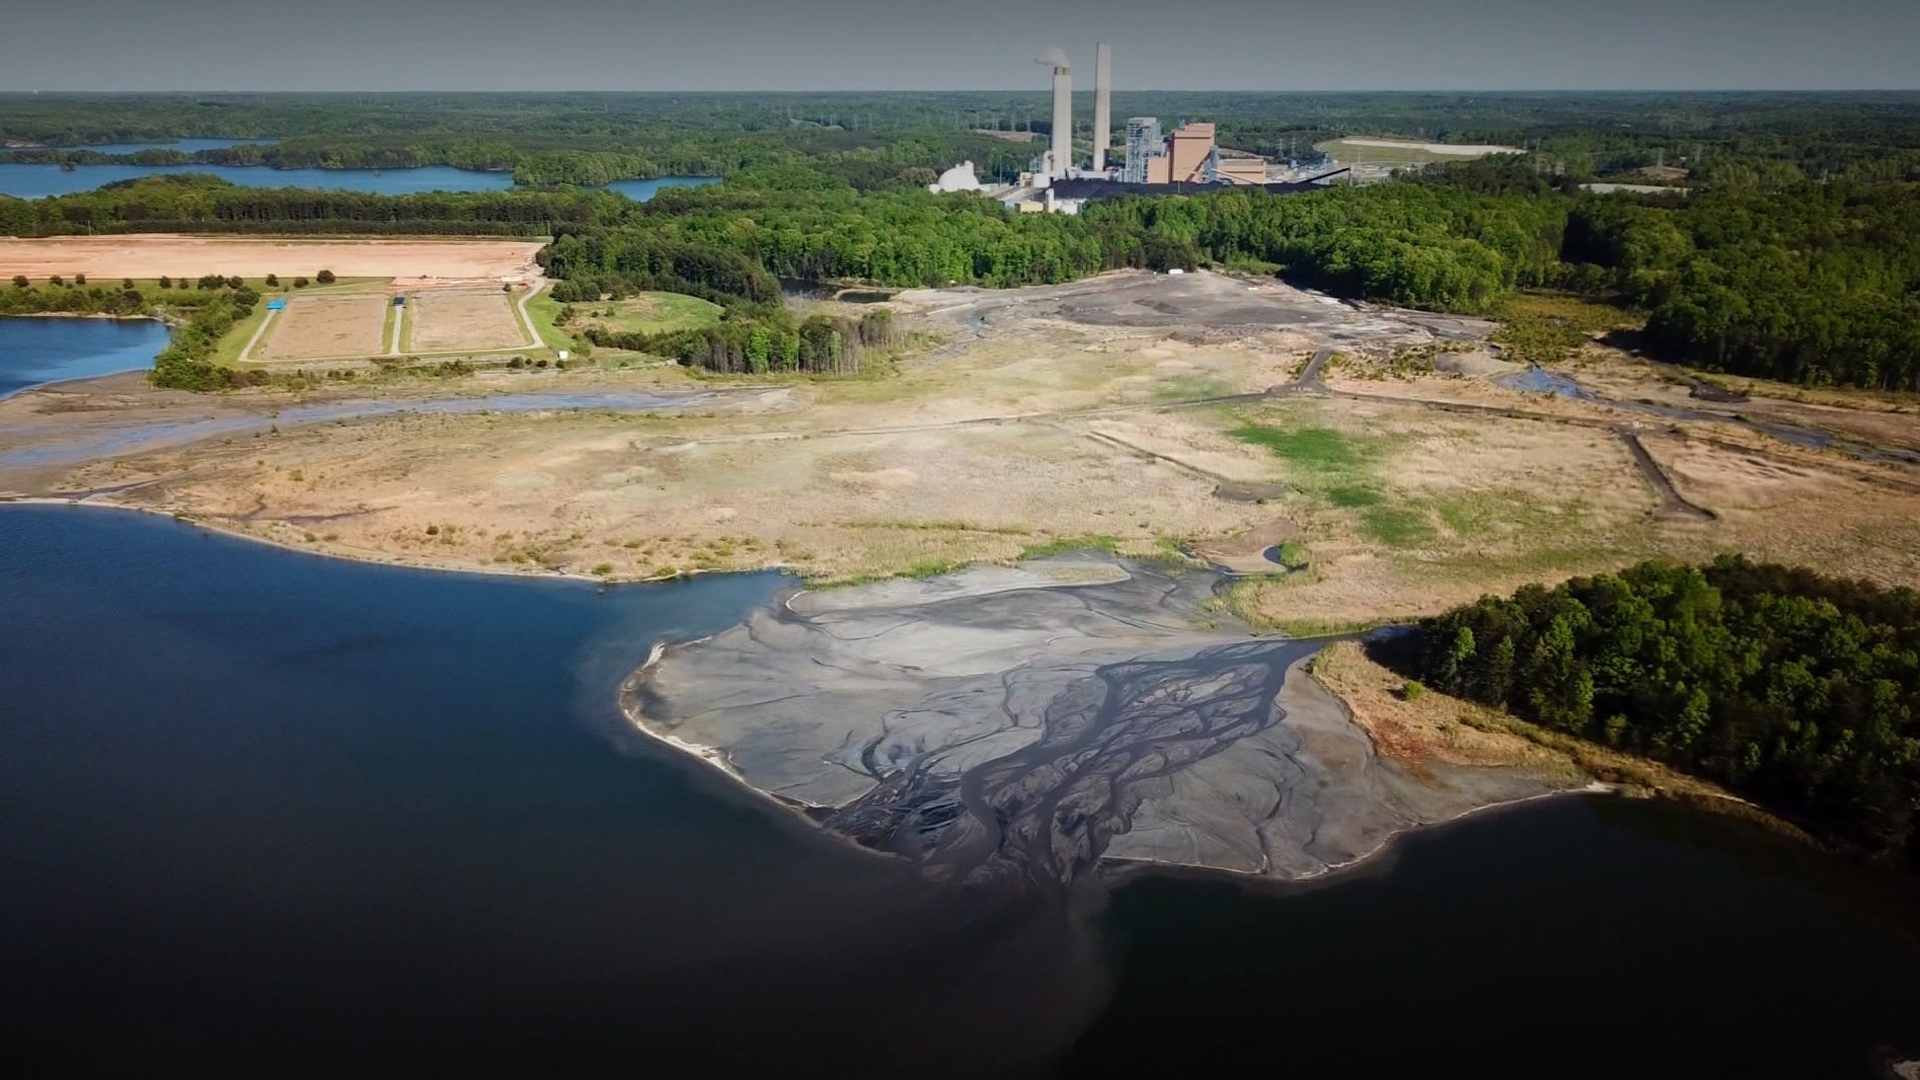 Coal burning power plants create coal ash, one of the largest forms of industrial waste. (Credit: CNN)